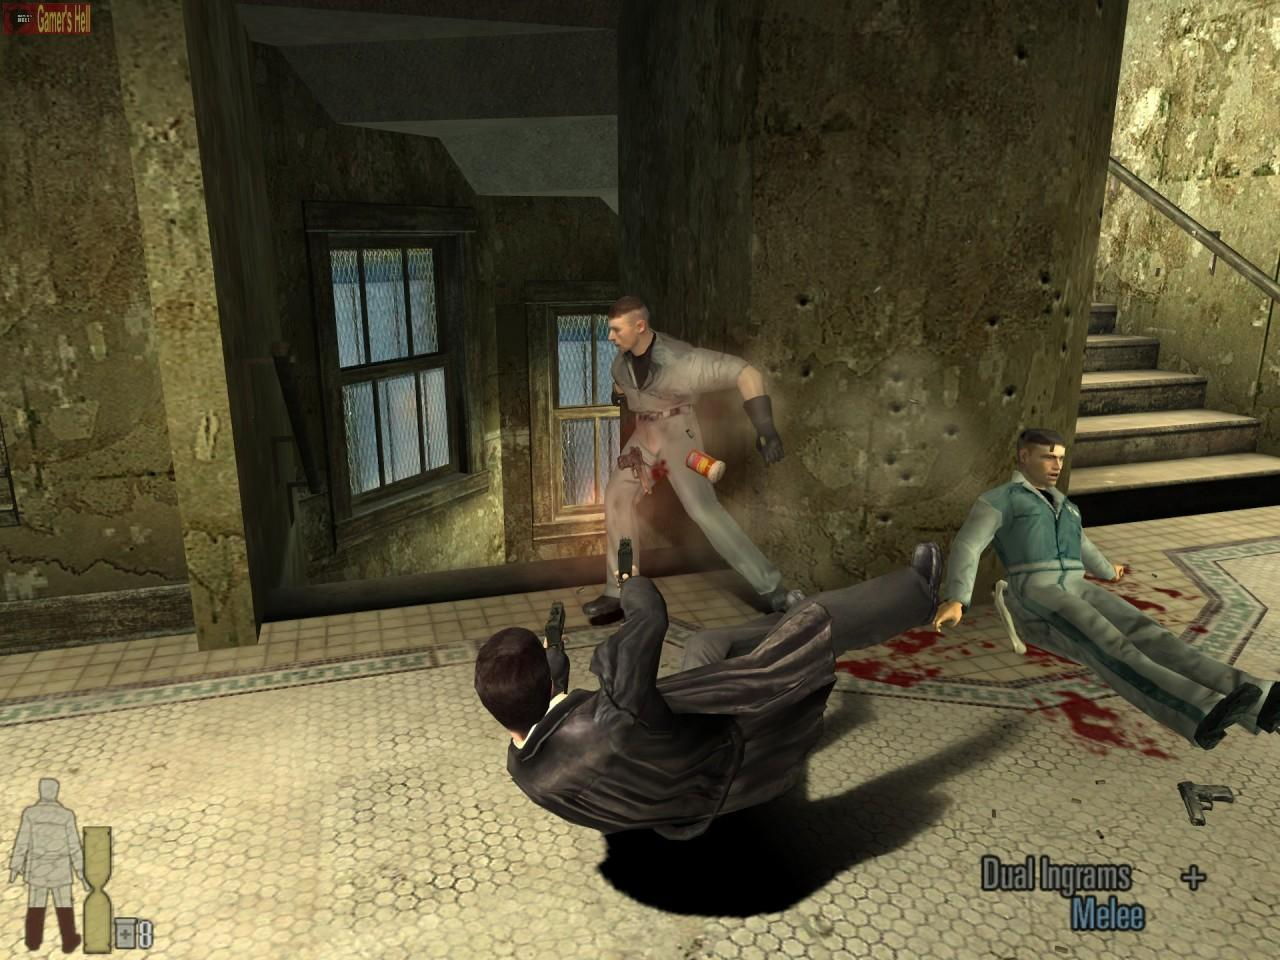 Fall Max Payne Hd Wallpapers Download Max Payne 2 Game Full Version For Free